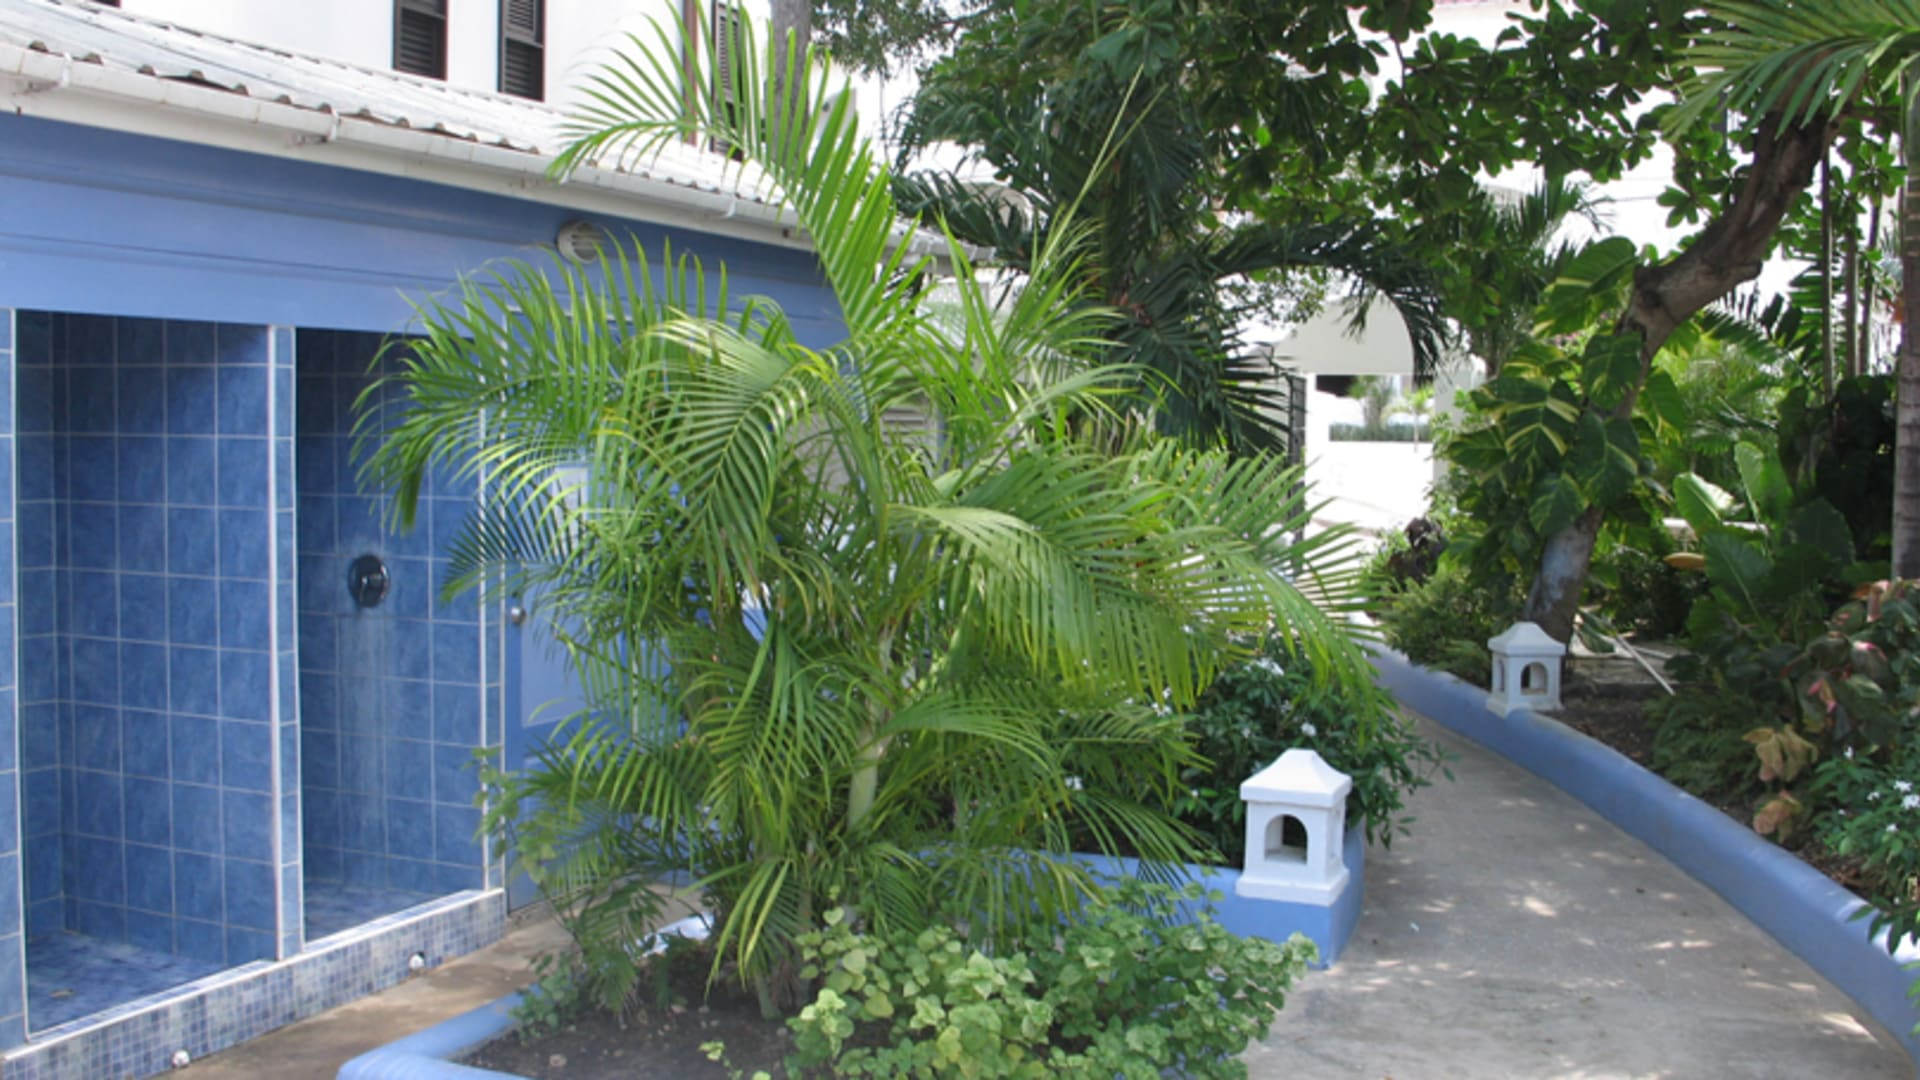 Tropical Escape Hotel amp Blue Monkey Barbados Luxury Homes Real Estate For Sale